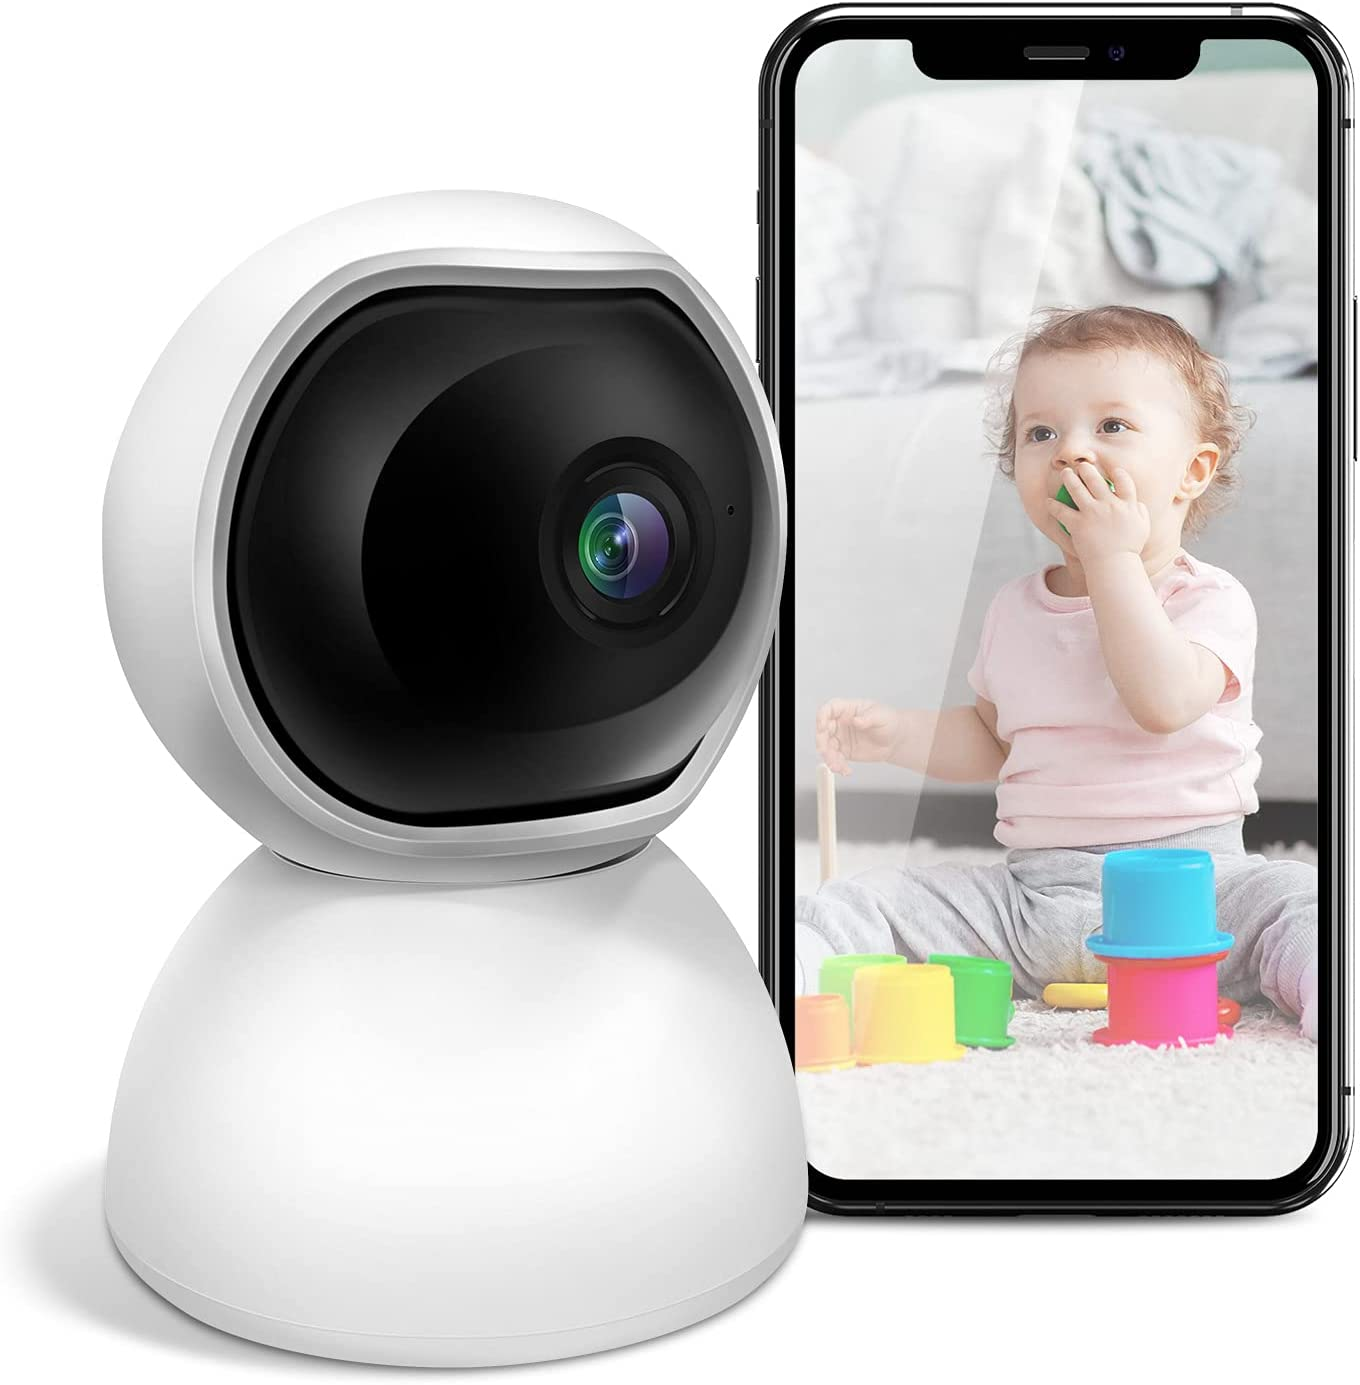 2021 Baby Monitor & Security Camera-- 2-Way Audio & Motion Tracking & Alarm Area & Monitoring Timeline -- Always Protect Your Family